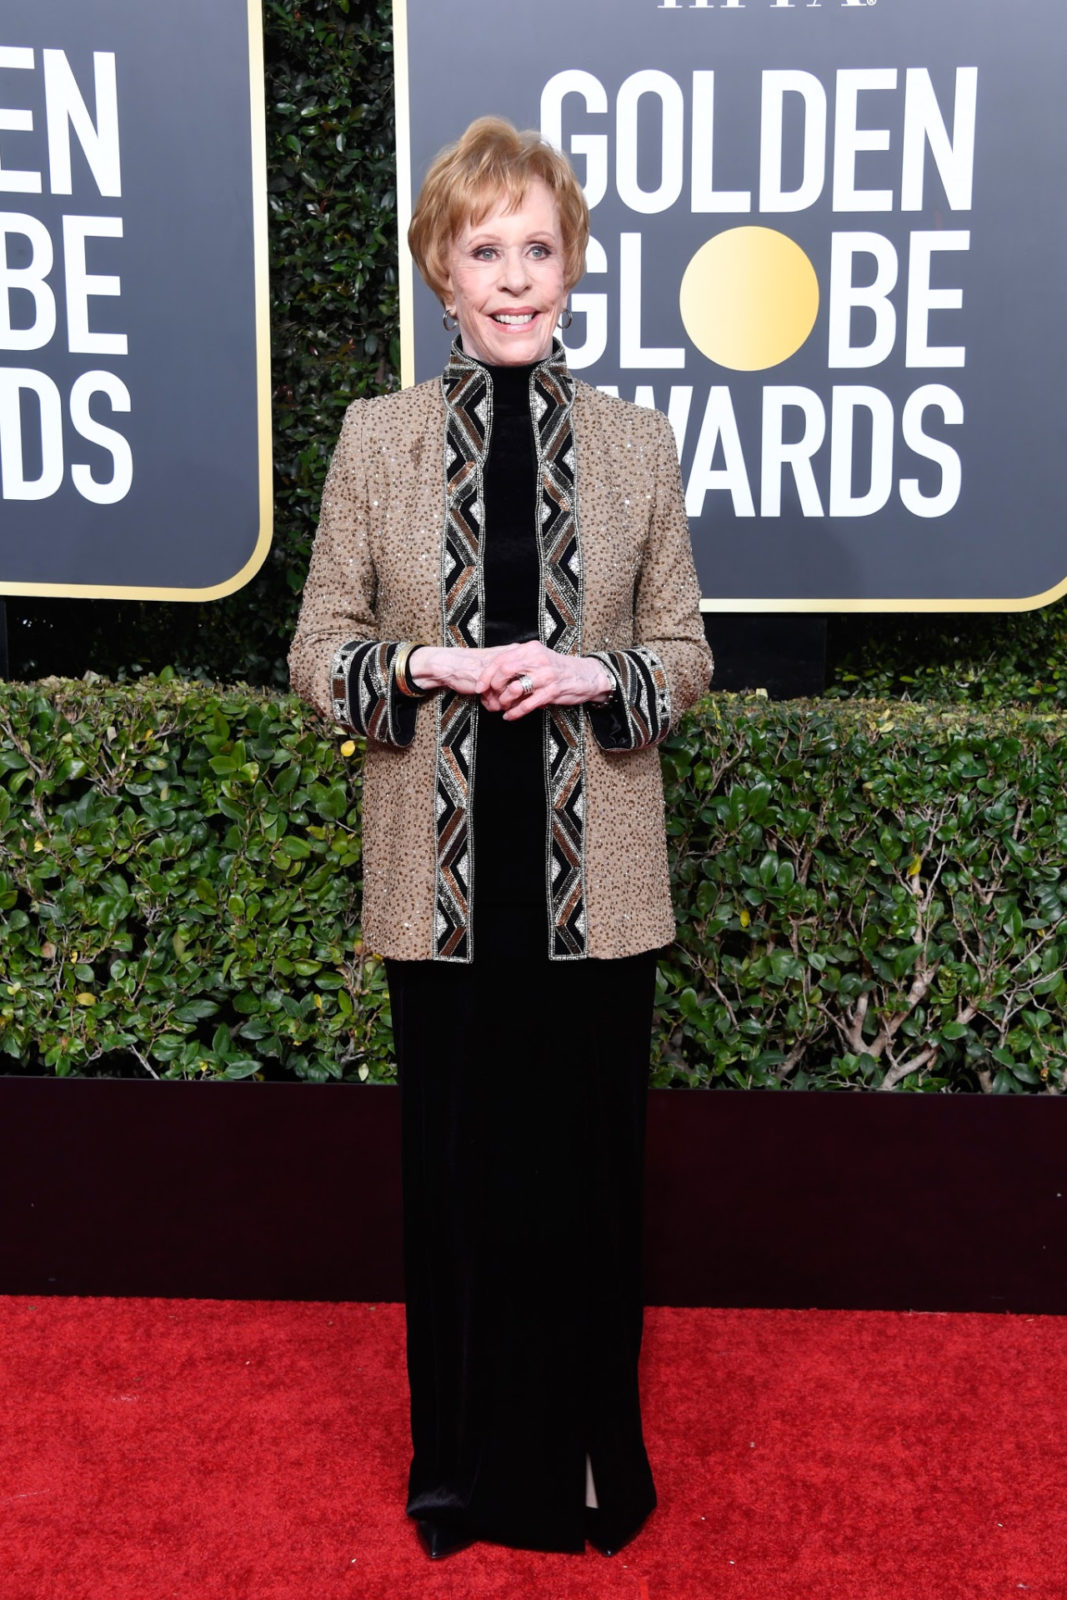 Carol Burnett looked stylish in a standout gold jacket. Source: Getty